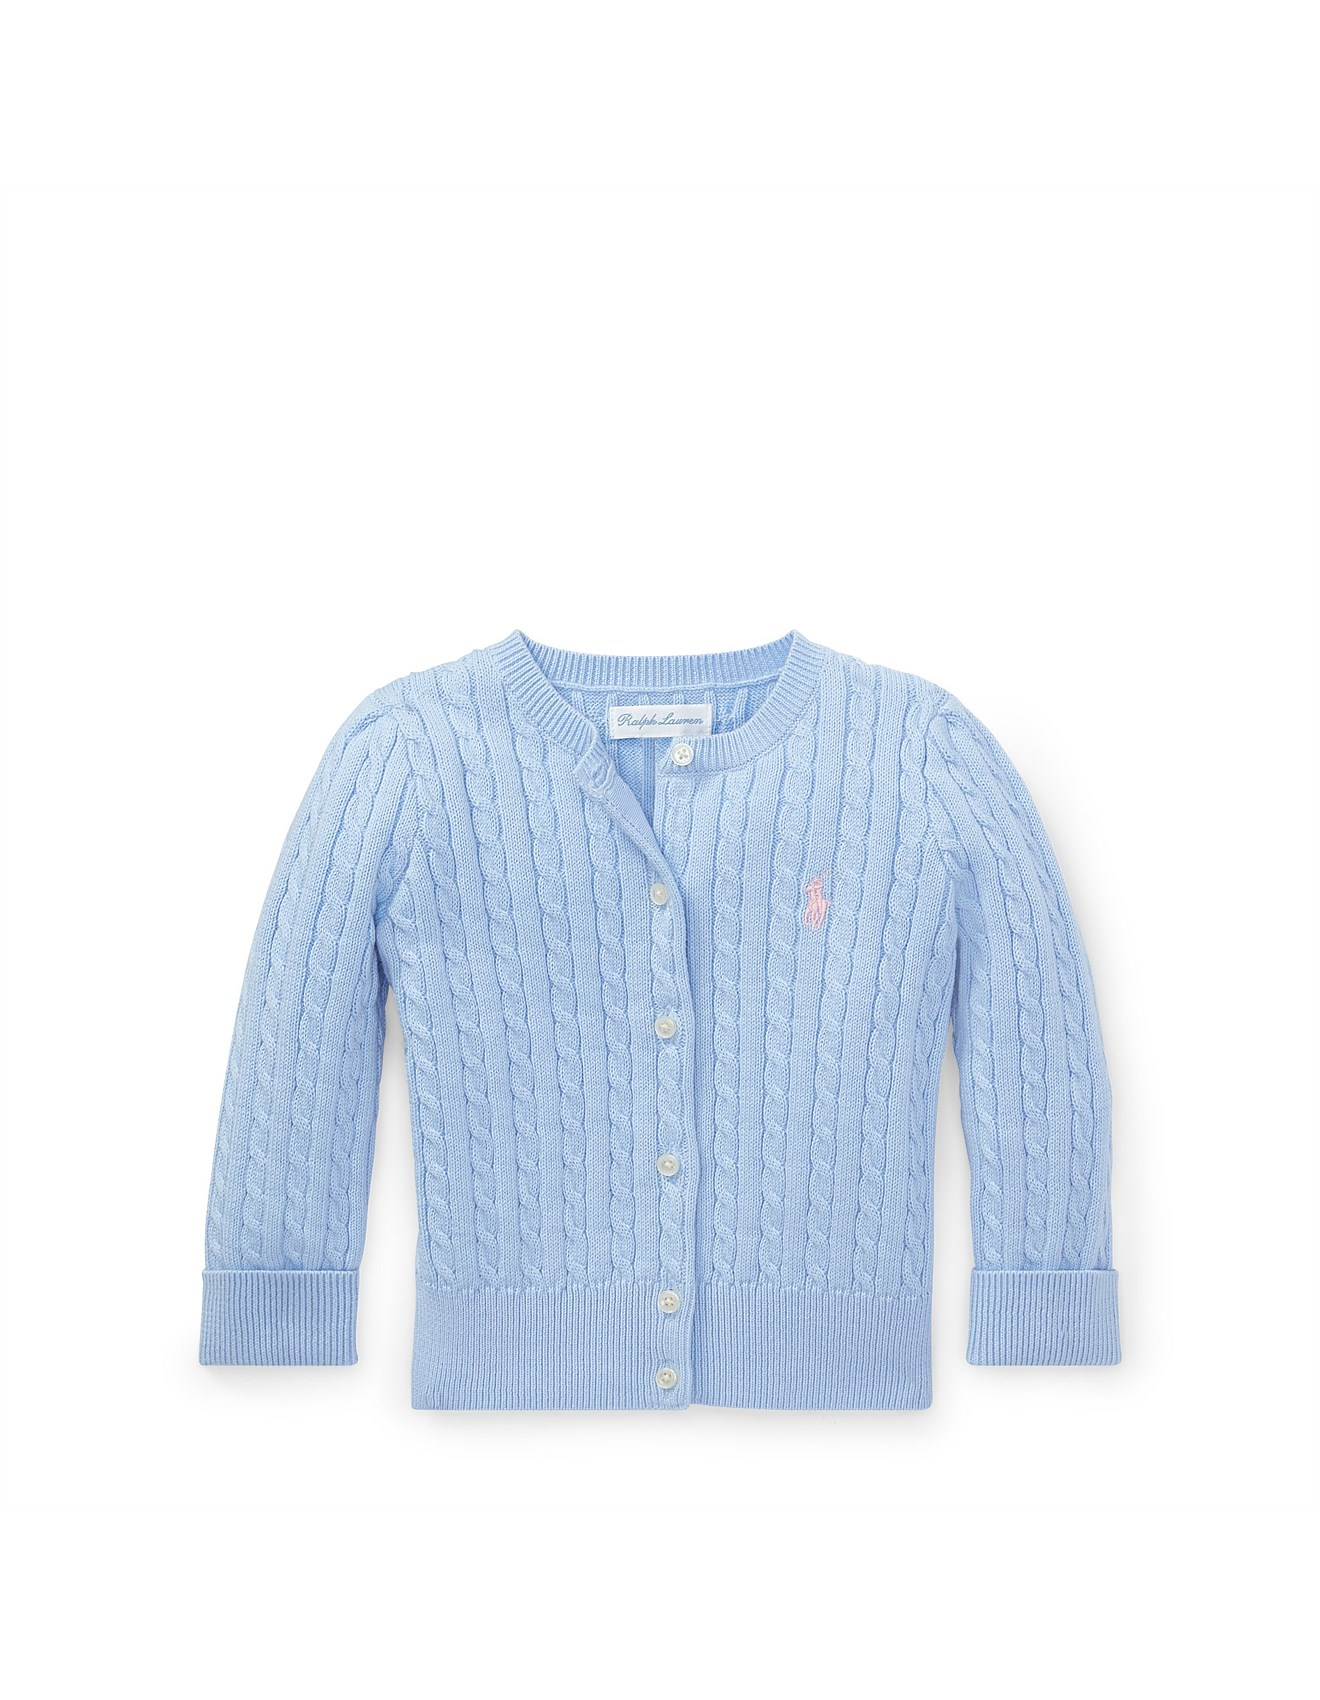 76518b734a Cable-Knit Cotton Cardigan (6-24 Months)